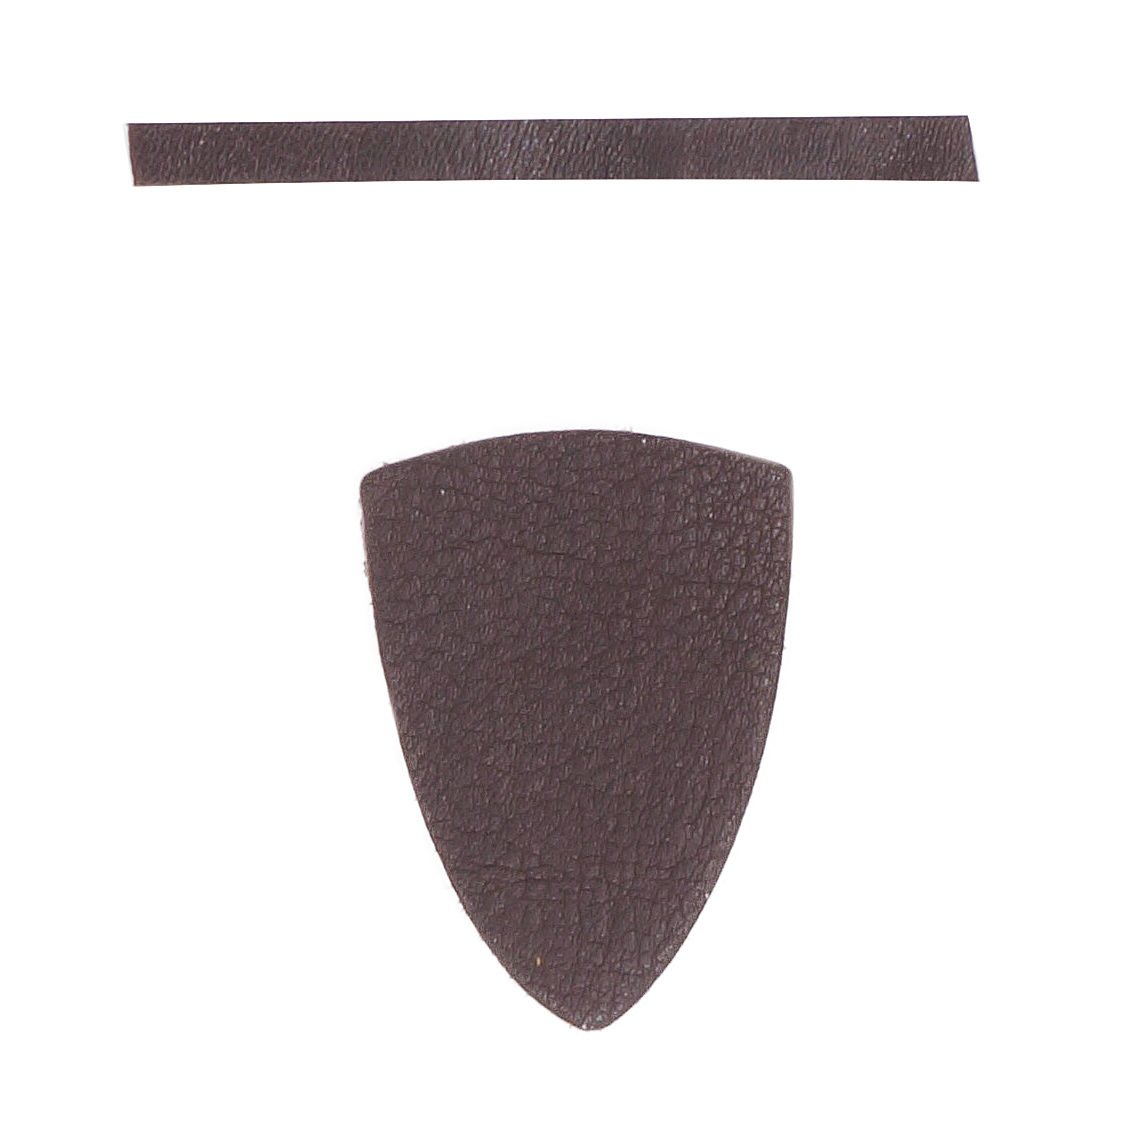 Serious Archery Brown Leather Arrow Rest and Spacer